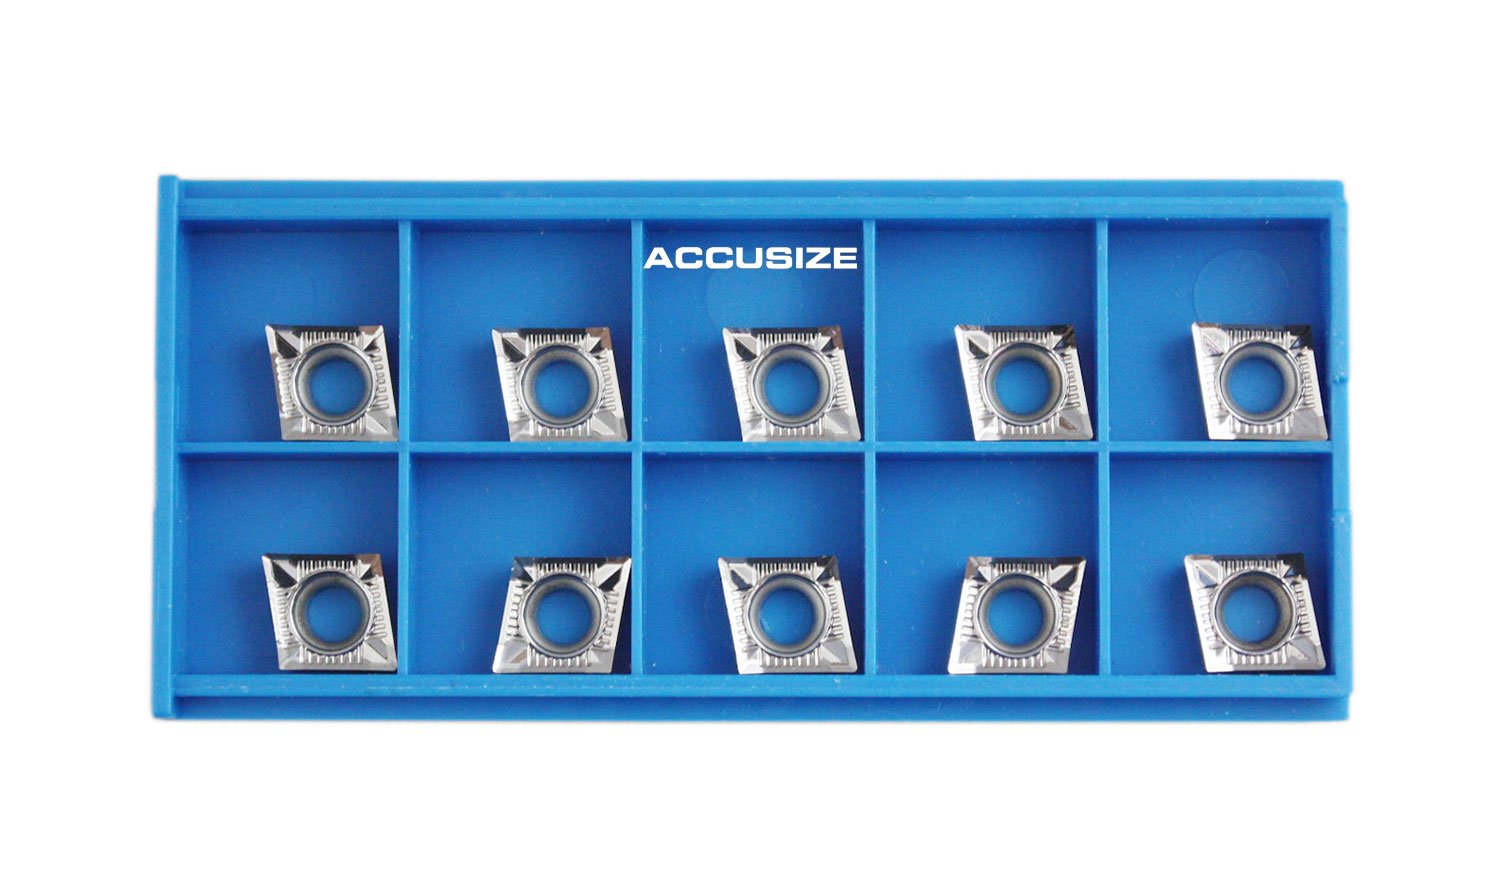 "Accusize Tools - 10 Pcs CCGT09T304-AK for Aluminum, 0.015"" carbide inserts, #AKH01x10"